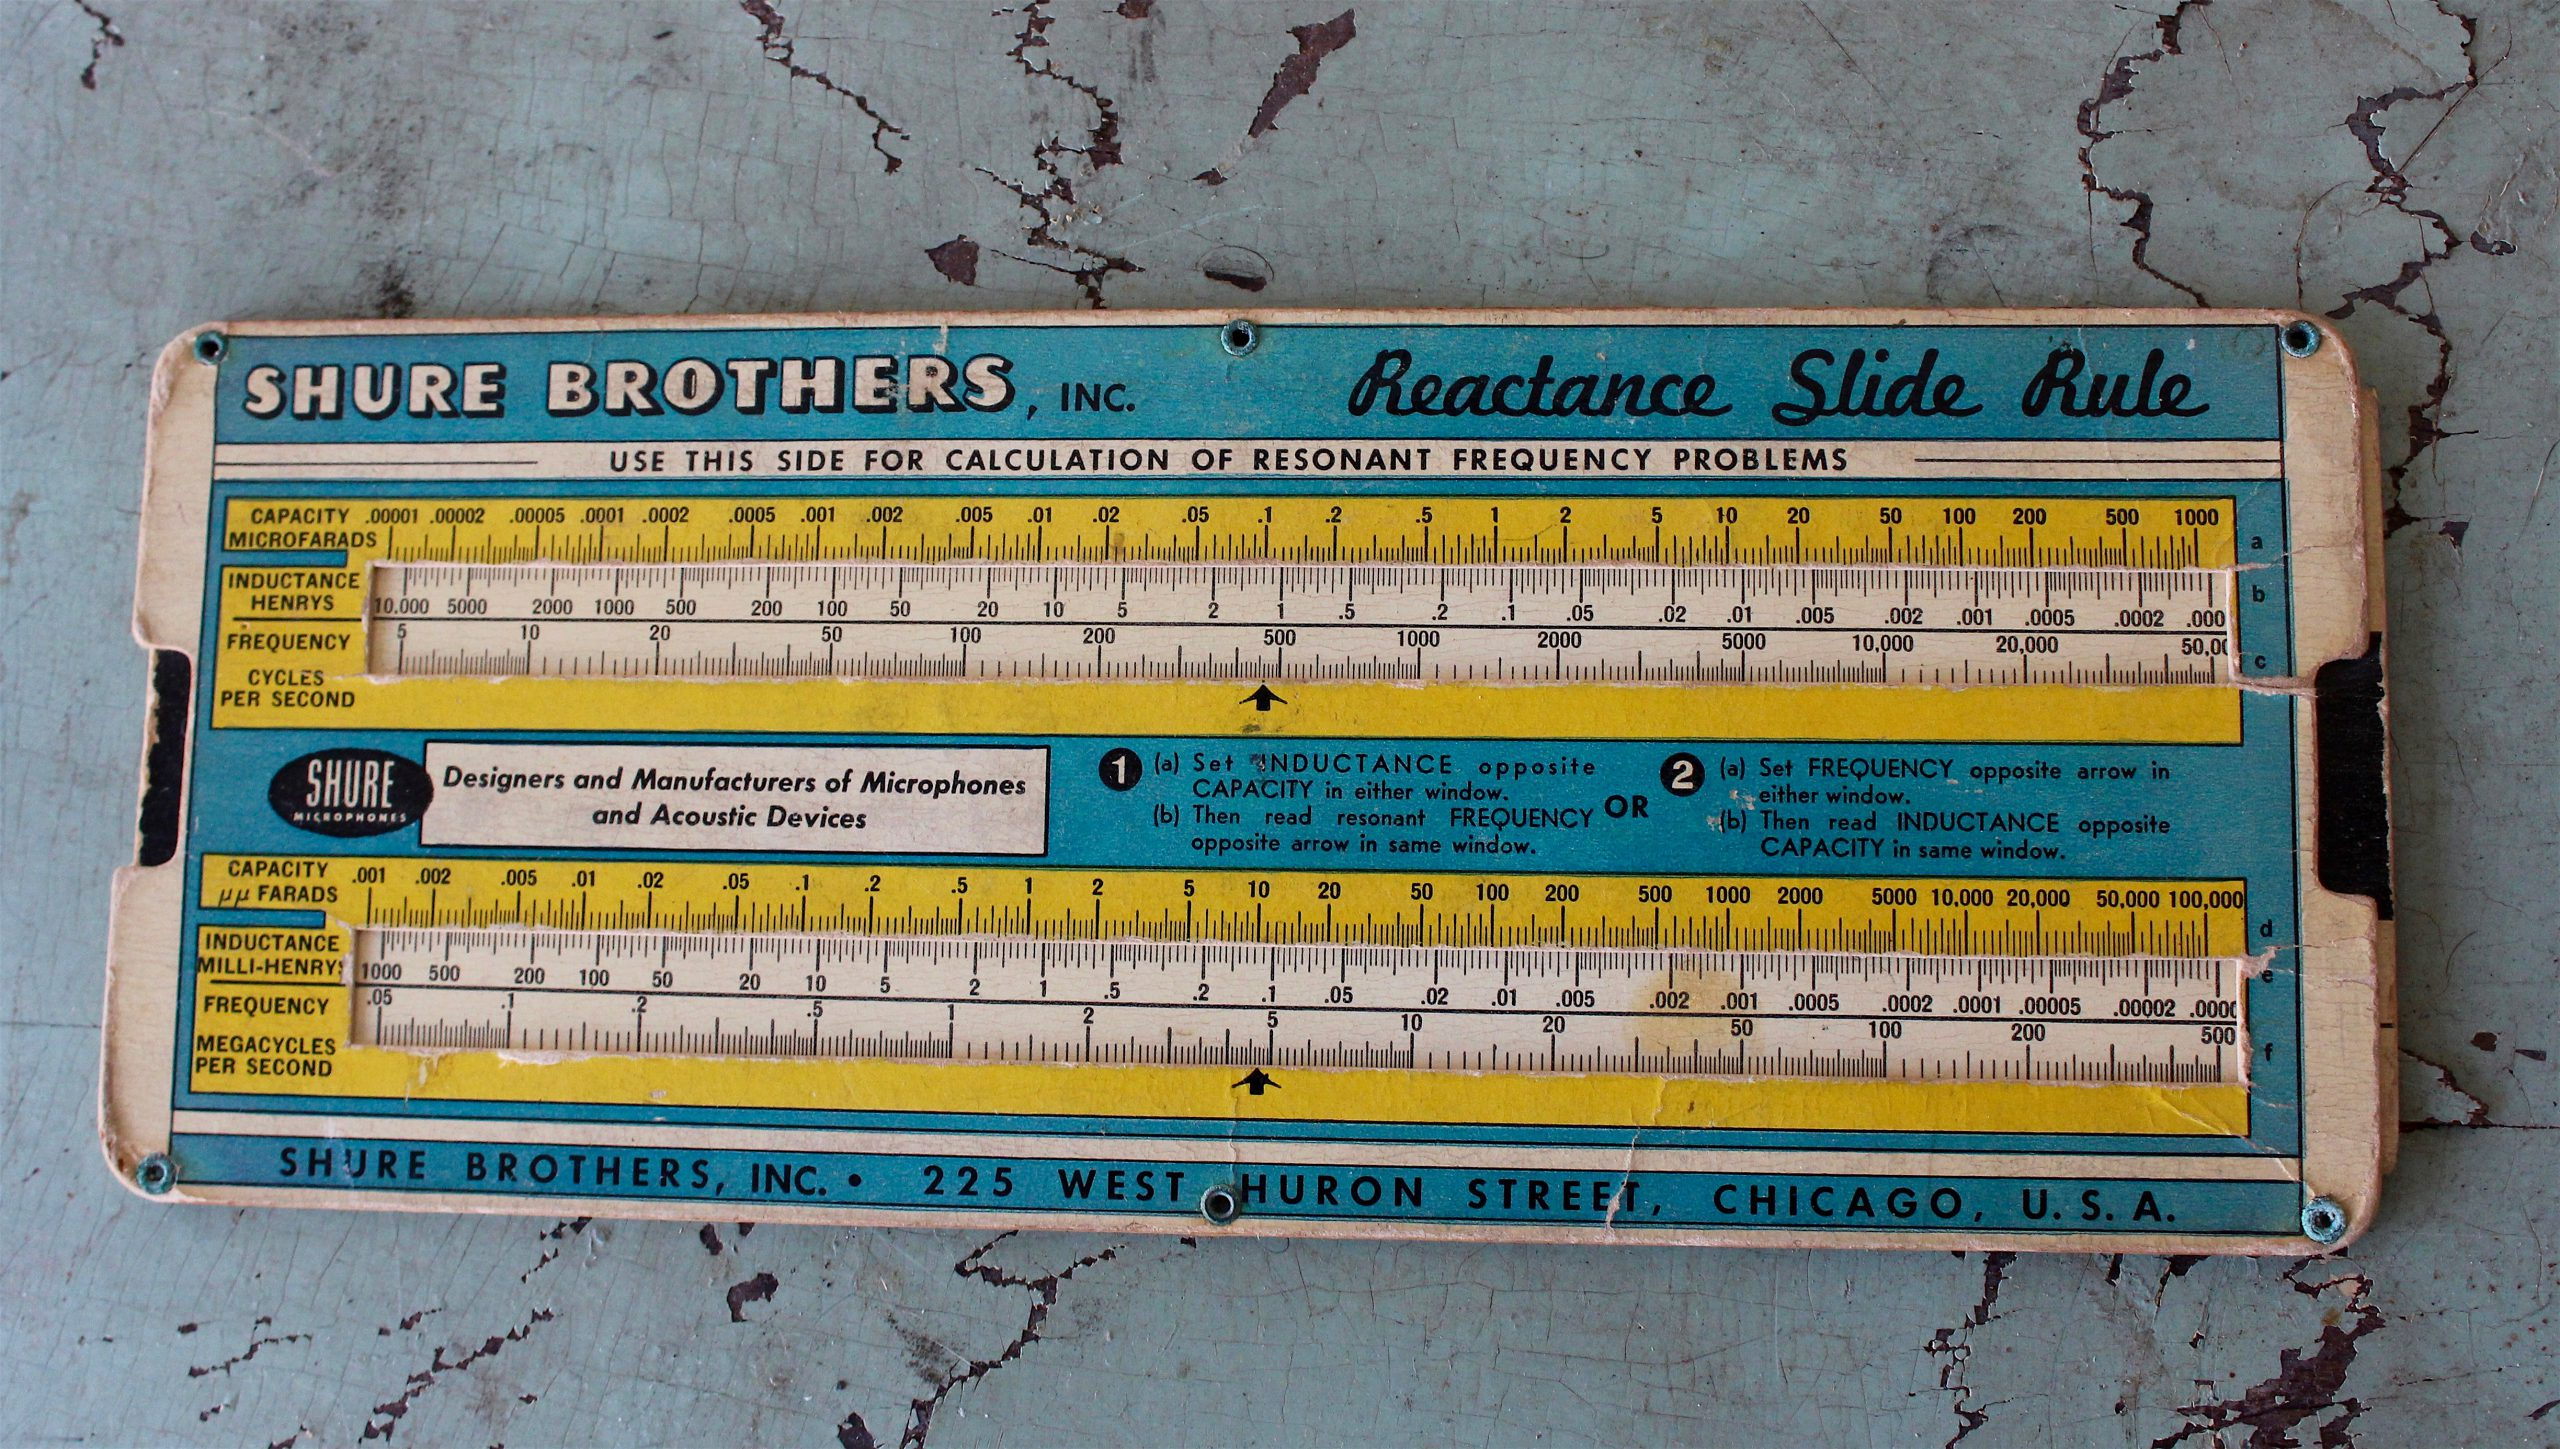 Reactance Slide Rule by Shure Brothers, Inc., c. 1940s